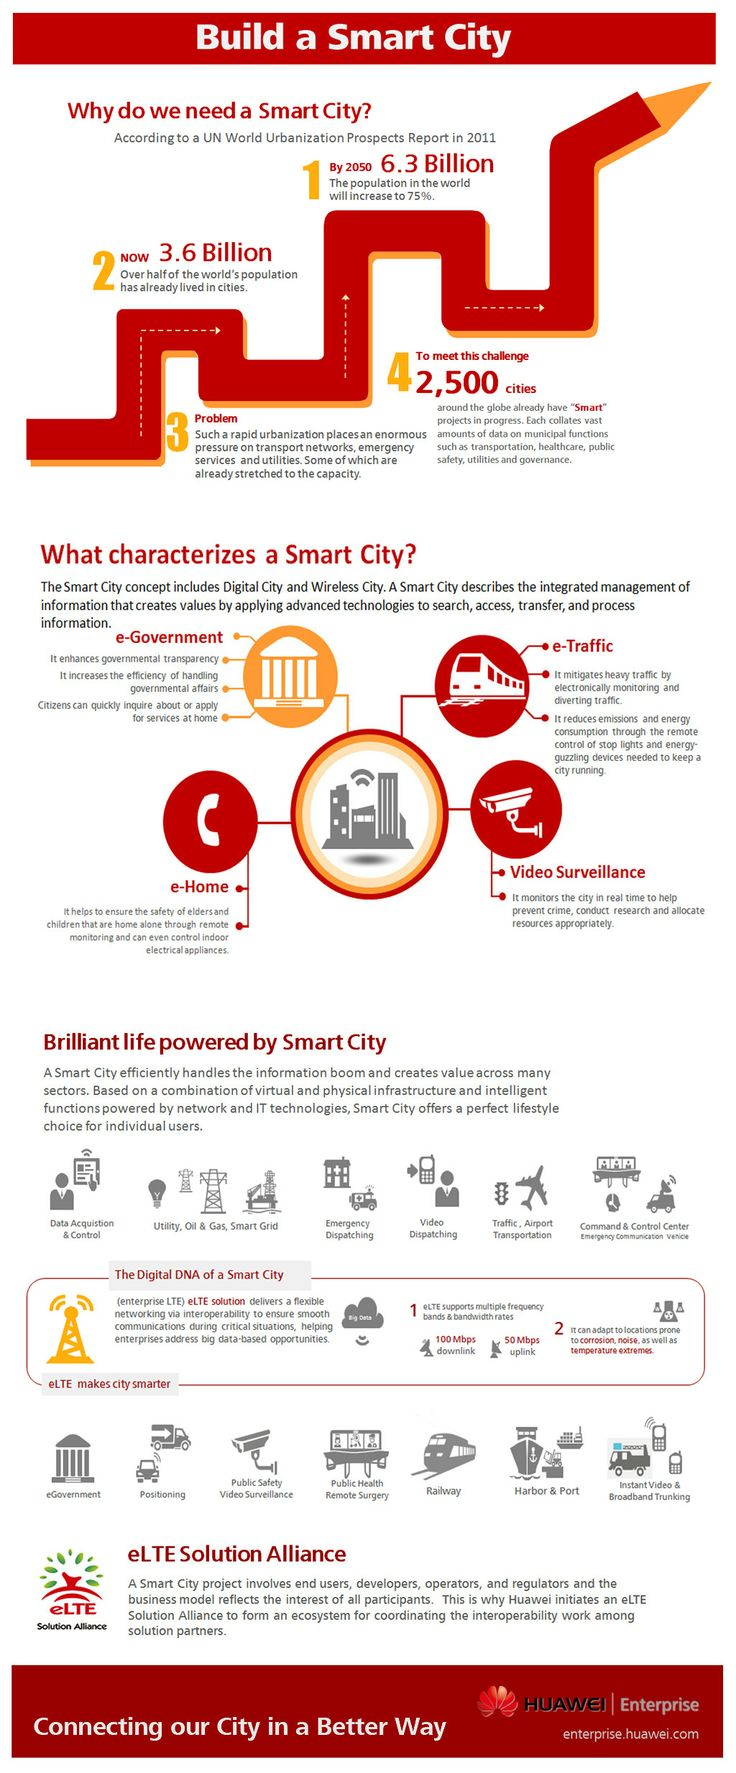 Huawei's Vision in Smart City